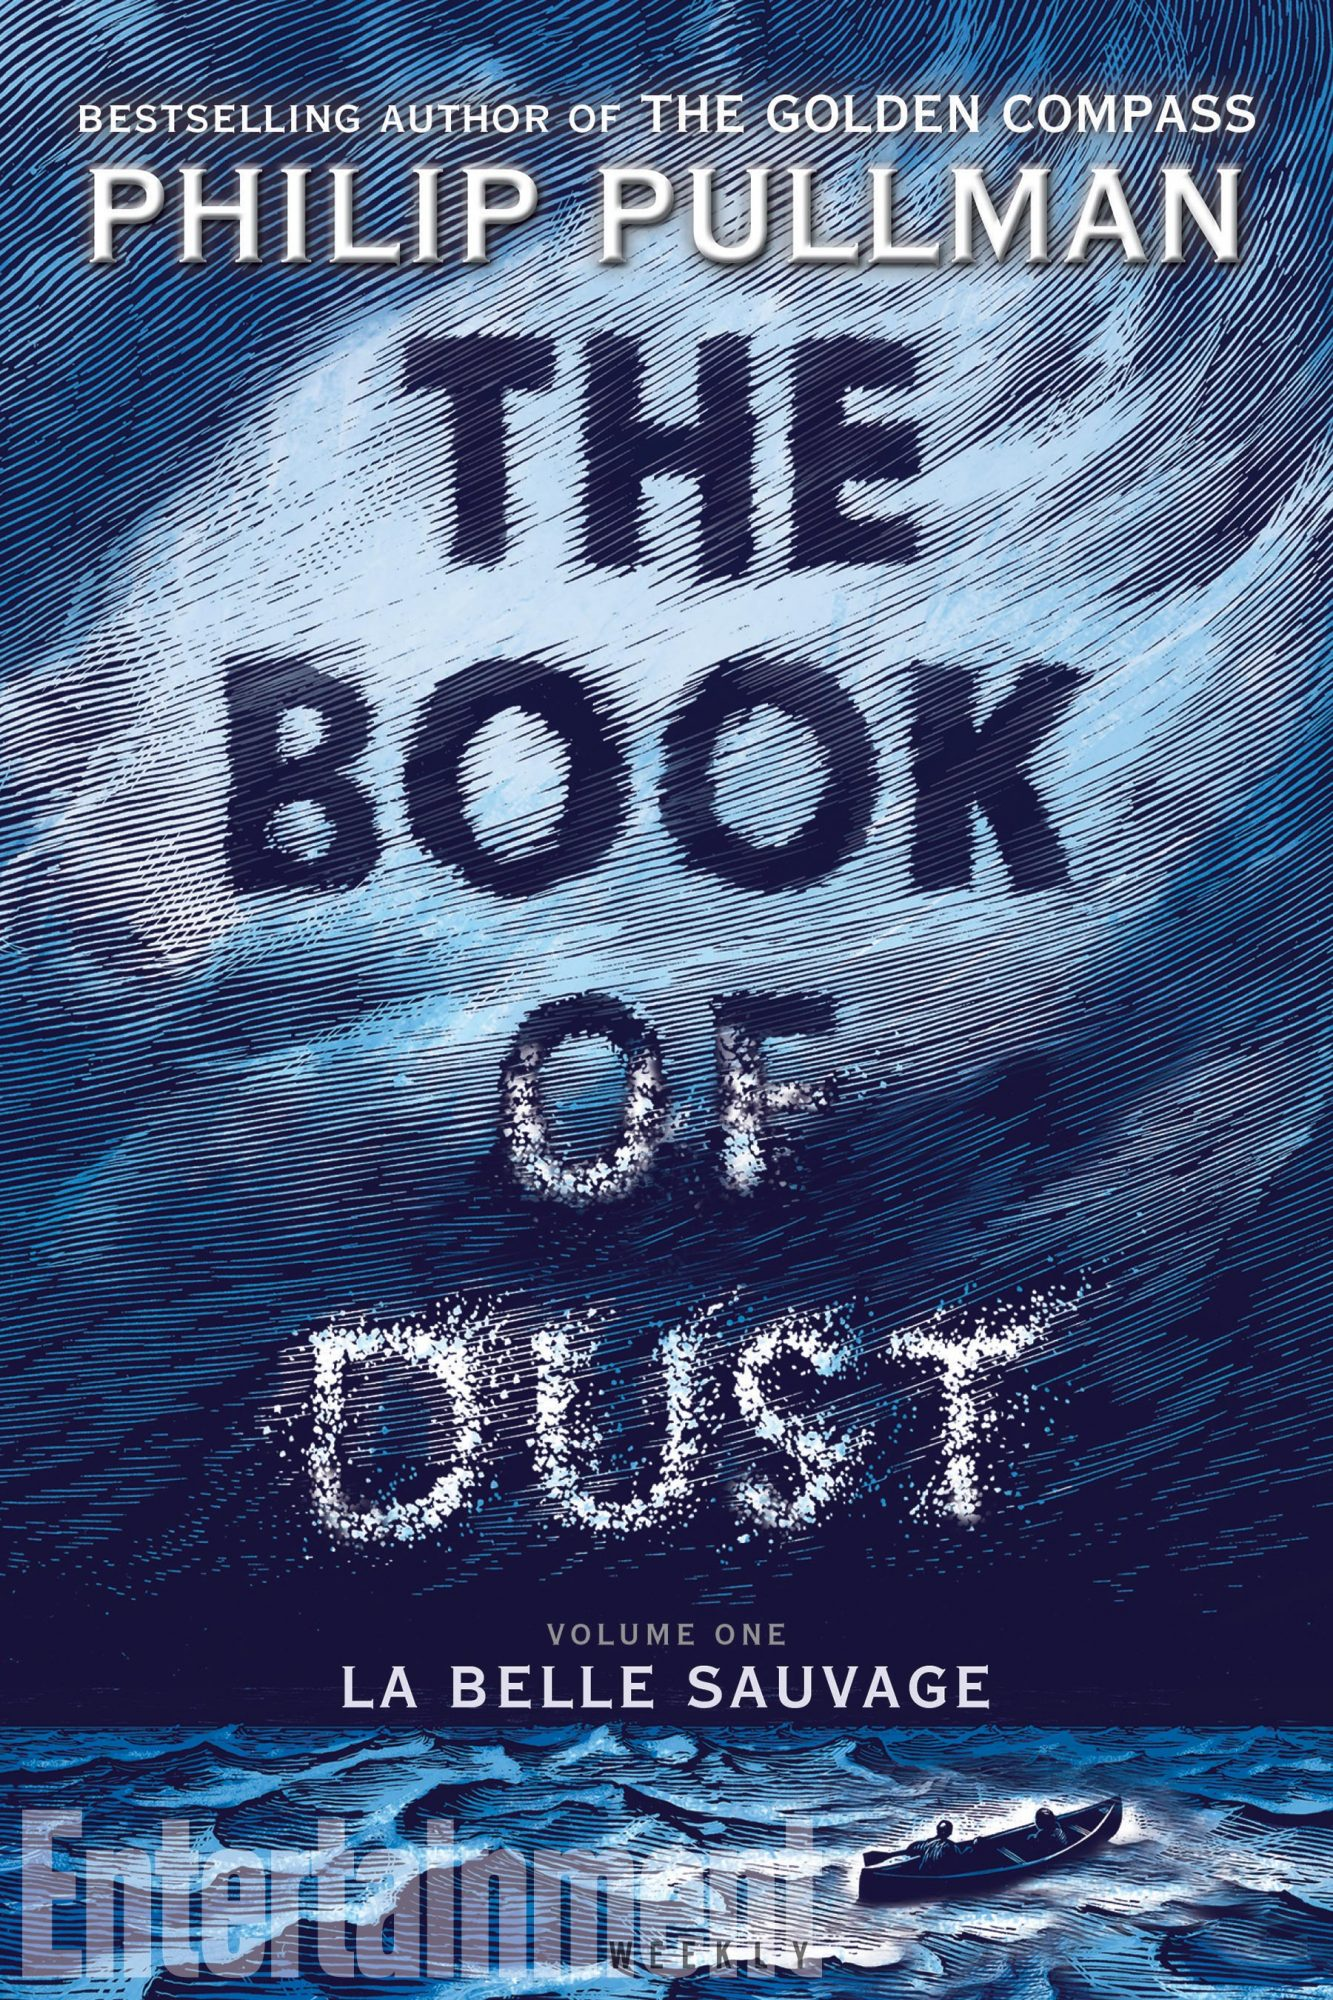 THE-BOOK-OF-DUST[1]